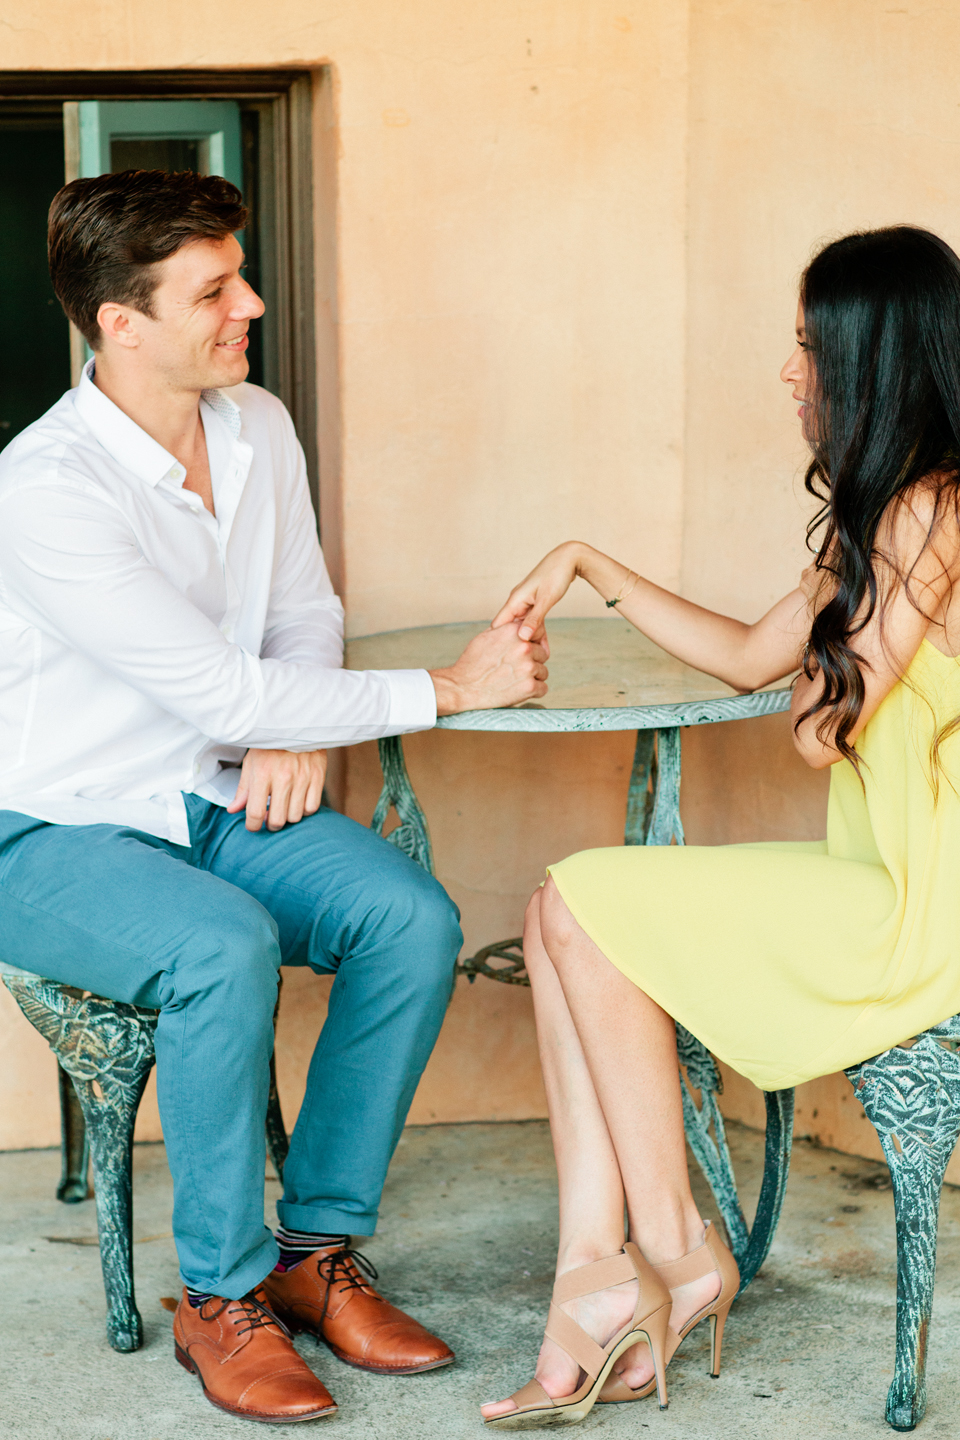 Picture of an engaged couple on a date.  They are sitting down together, facing each other, holding hands and smiling.